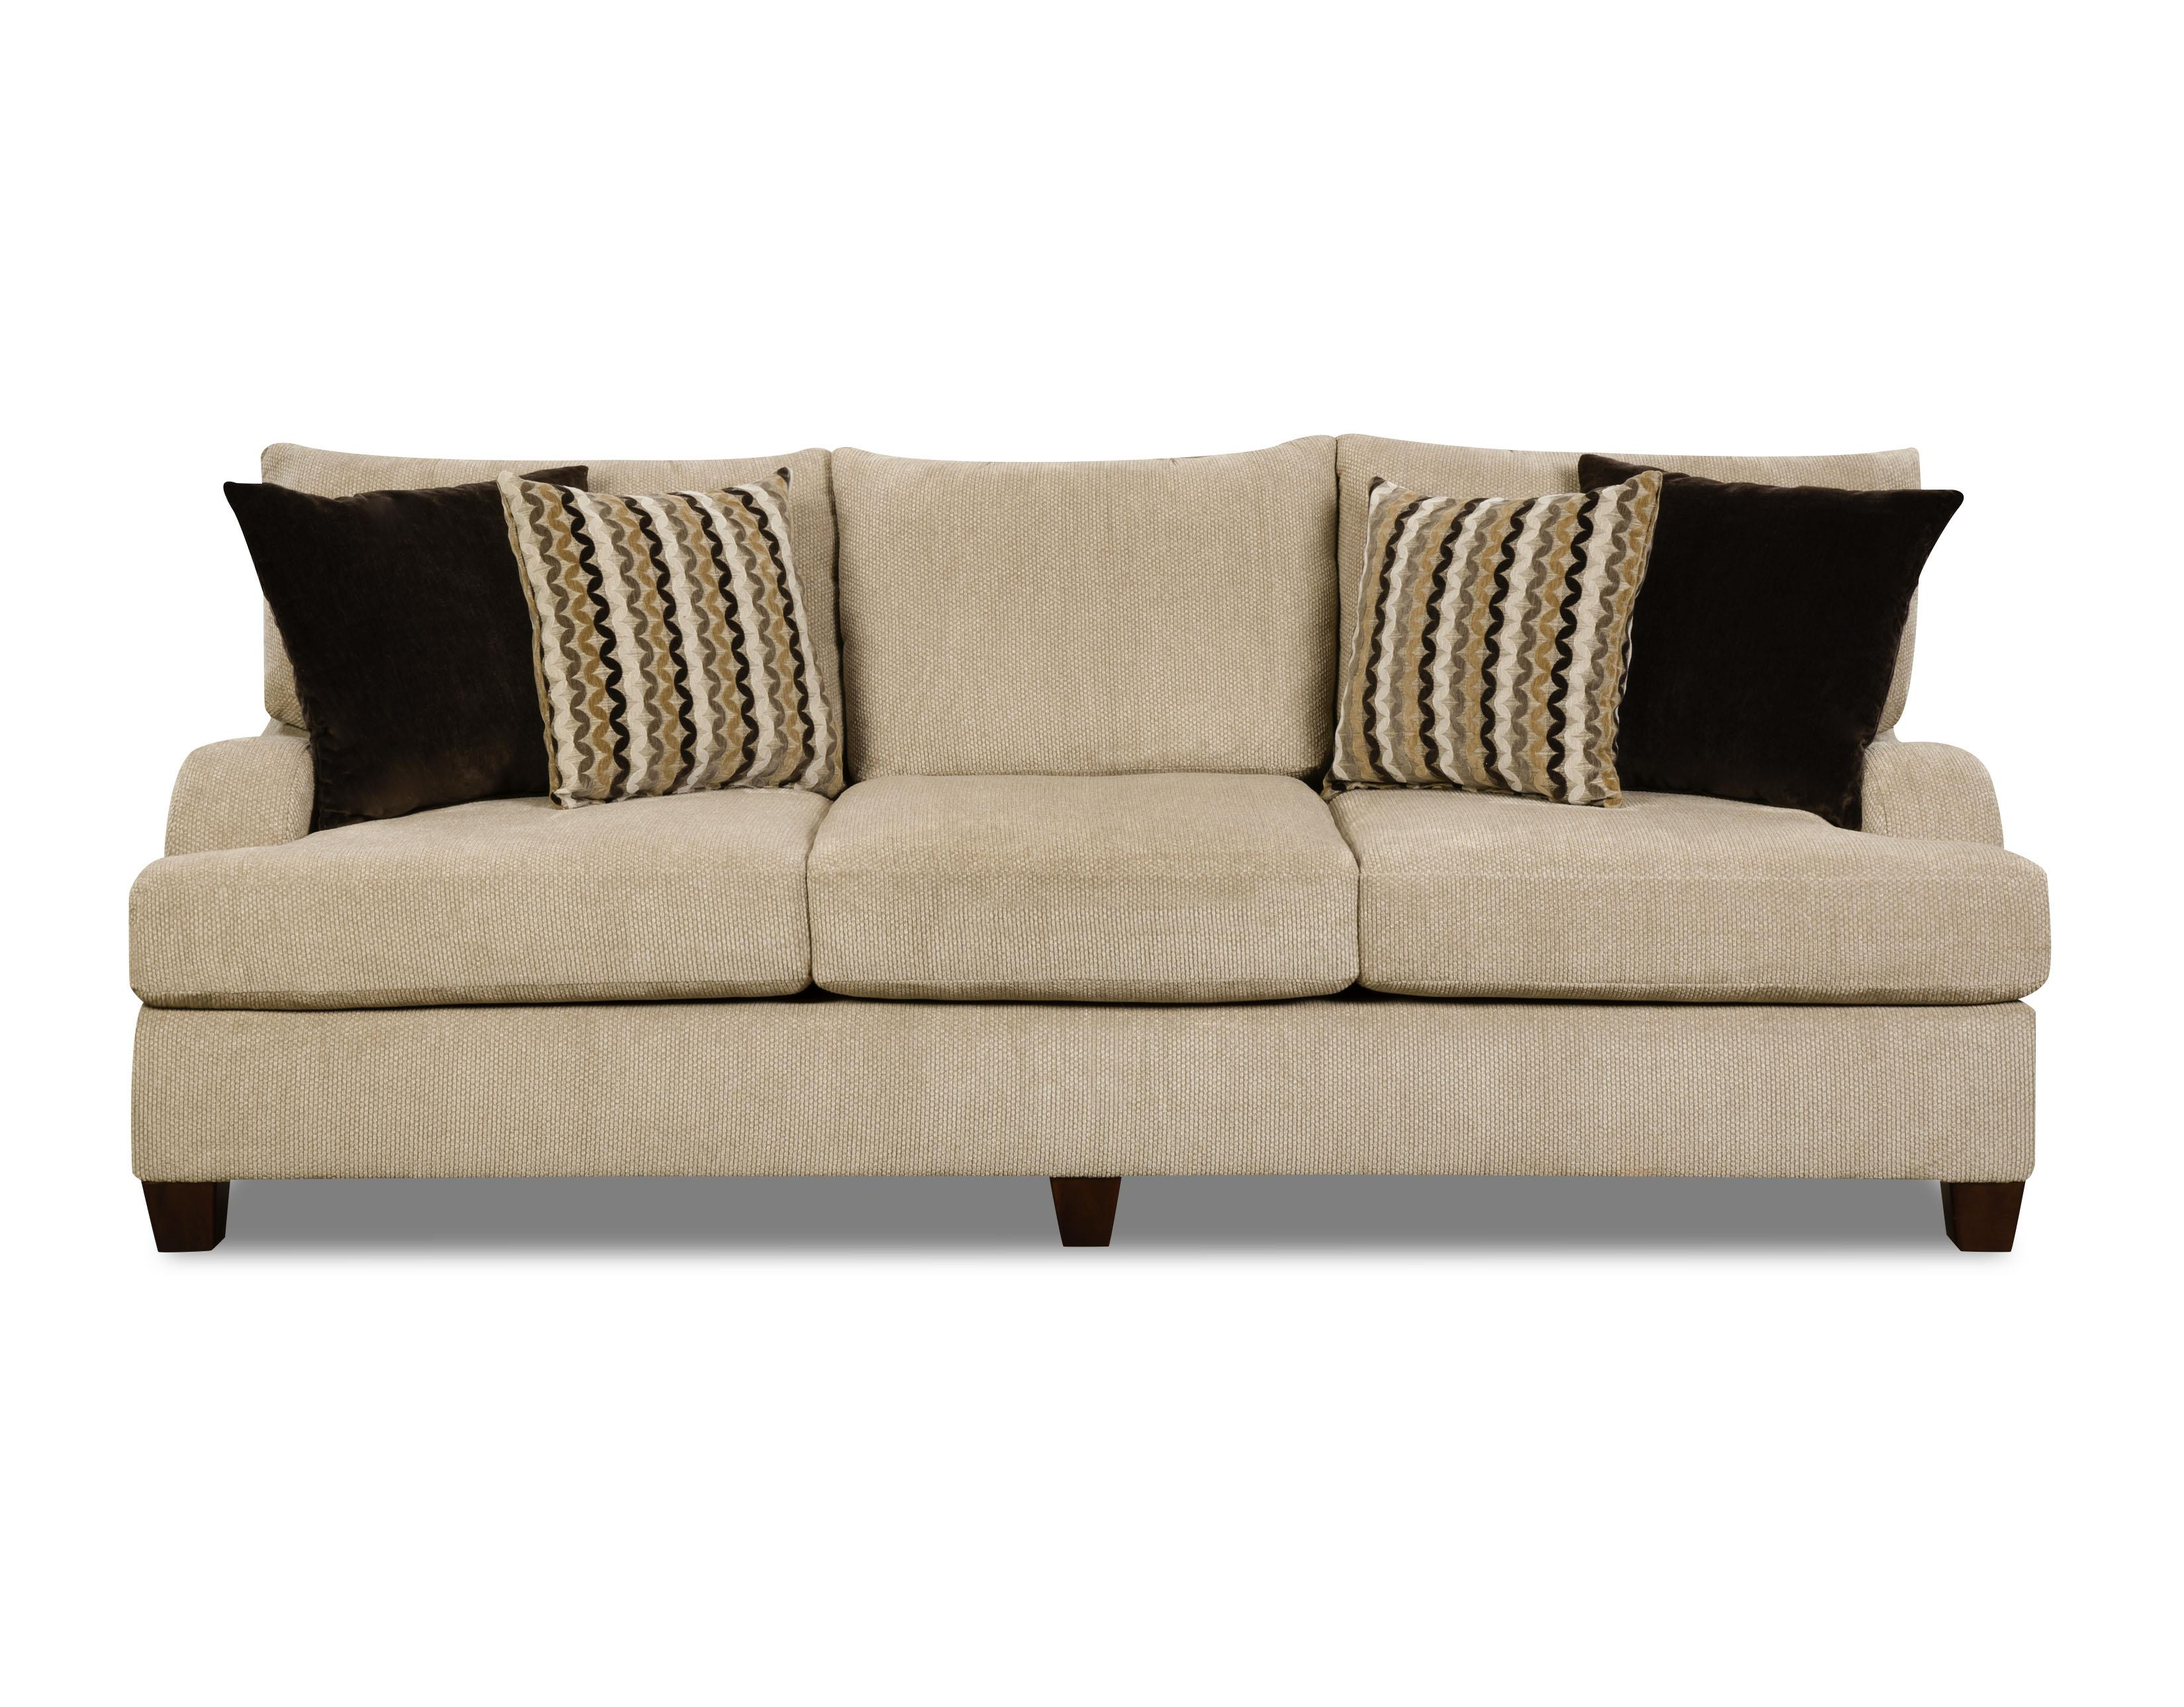 Simmons upholstery sofa simmons upholstery ashendon sofa reviews birch lane thesofa for Living room furniture trinidad